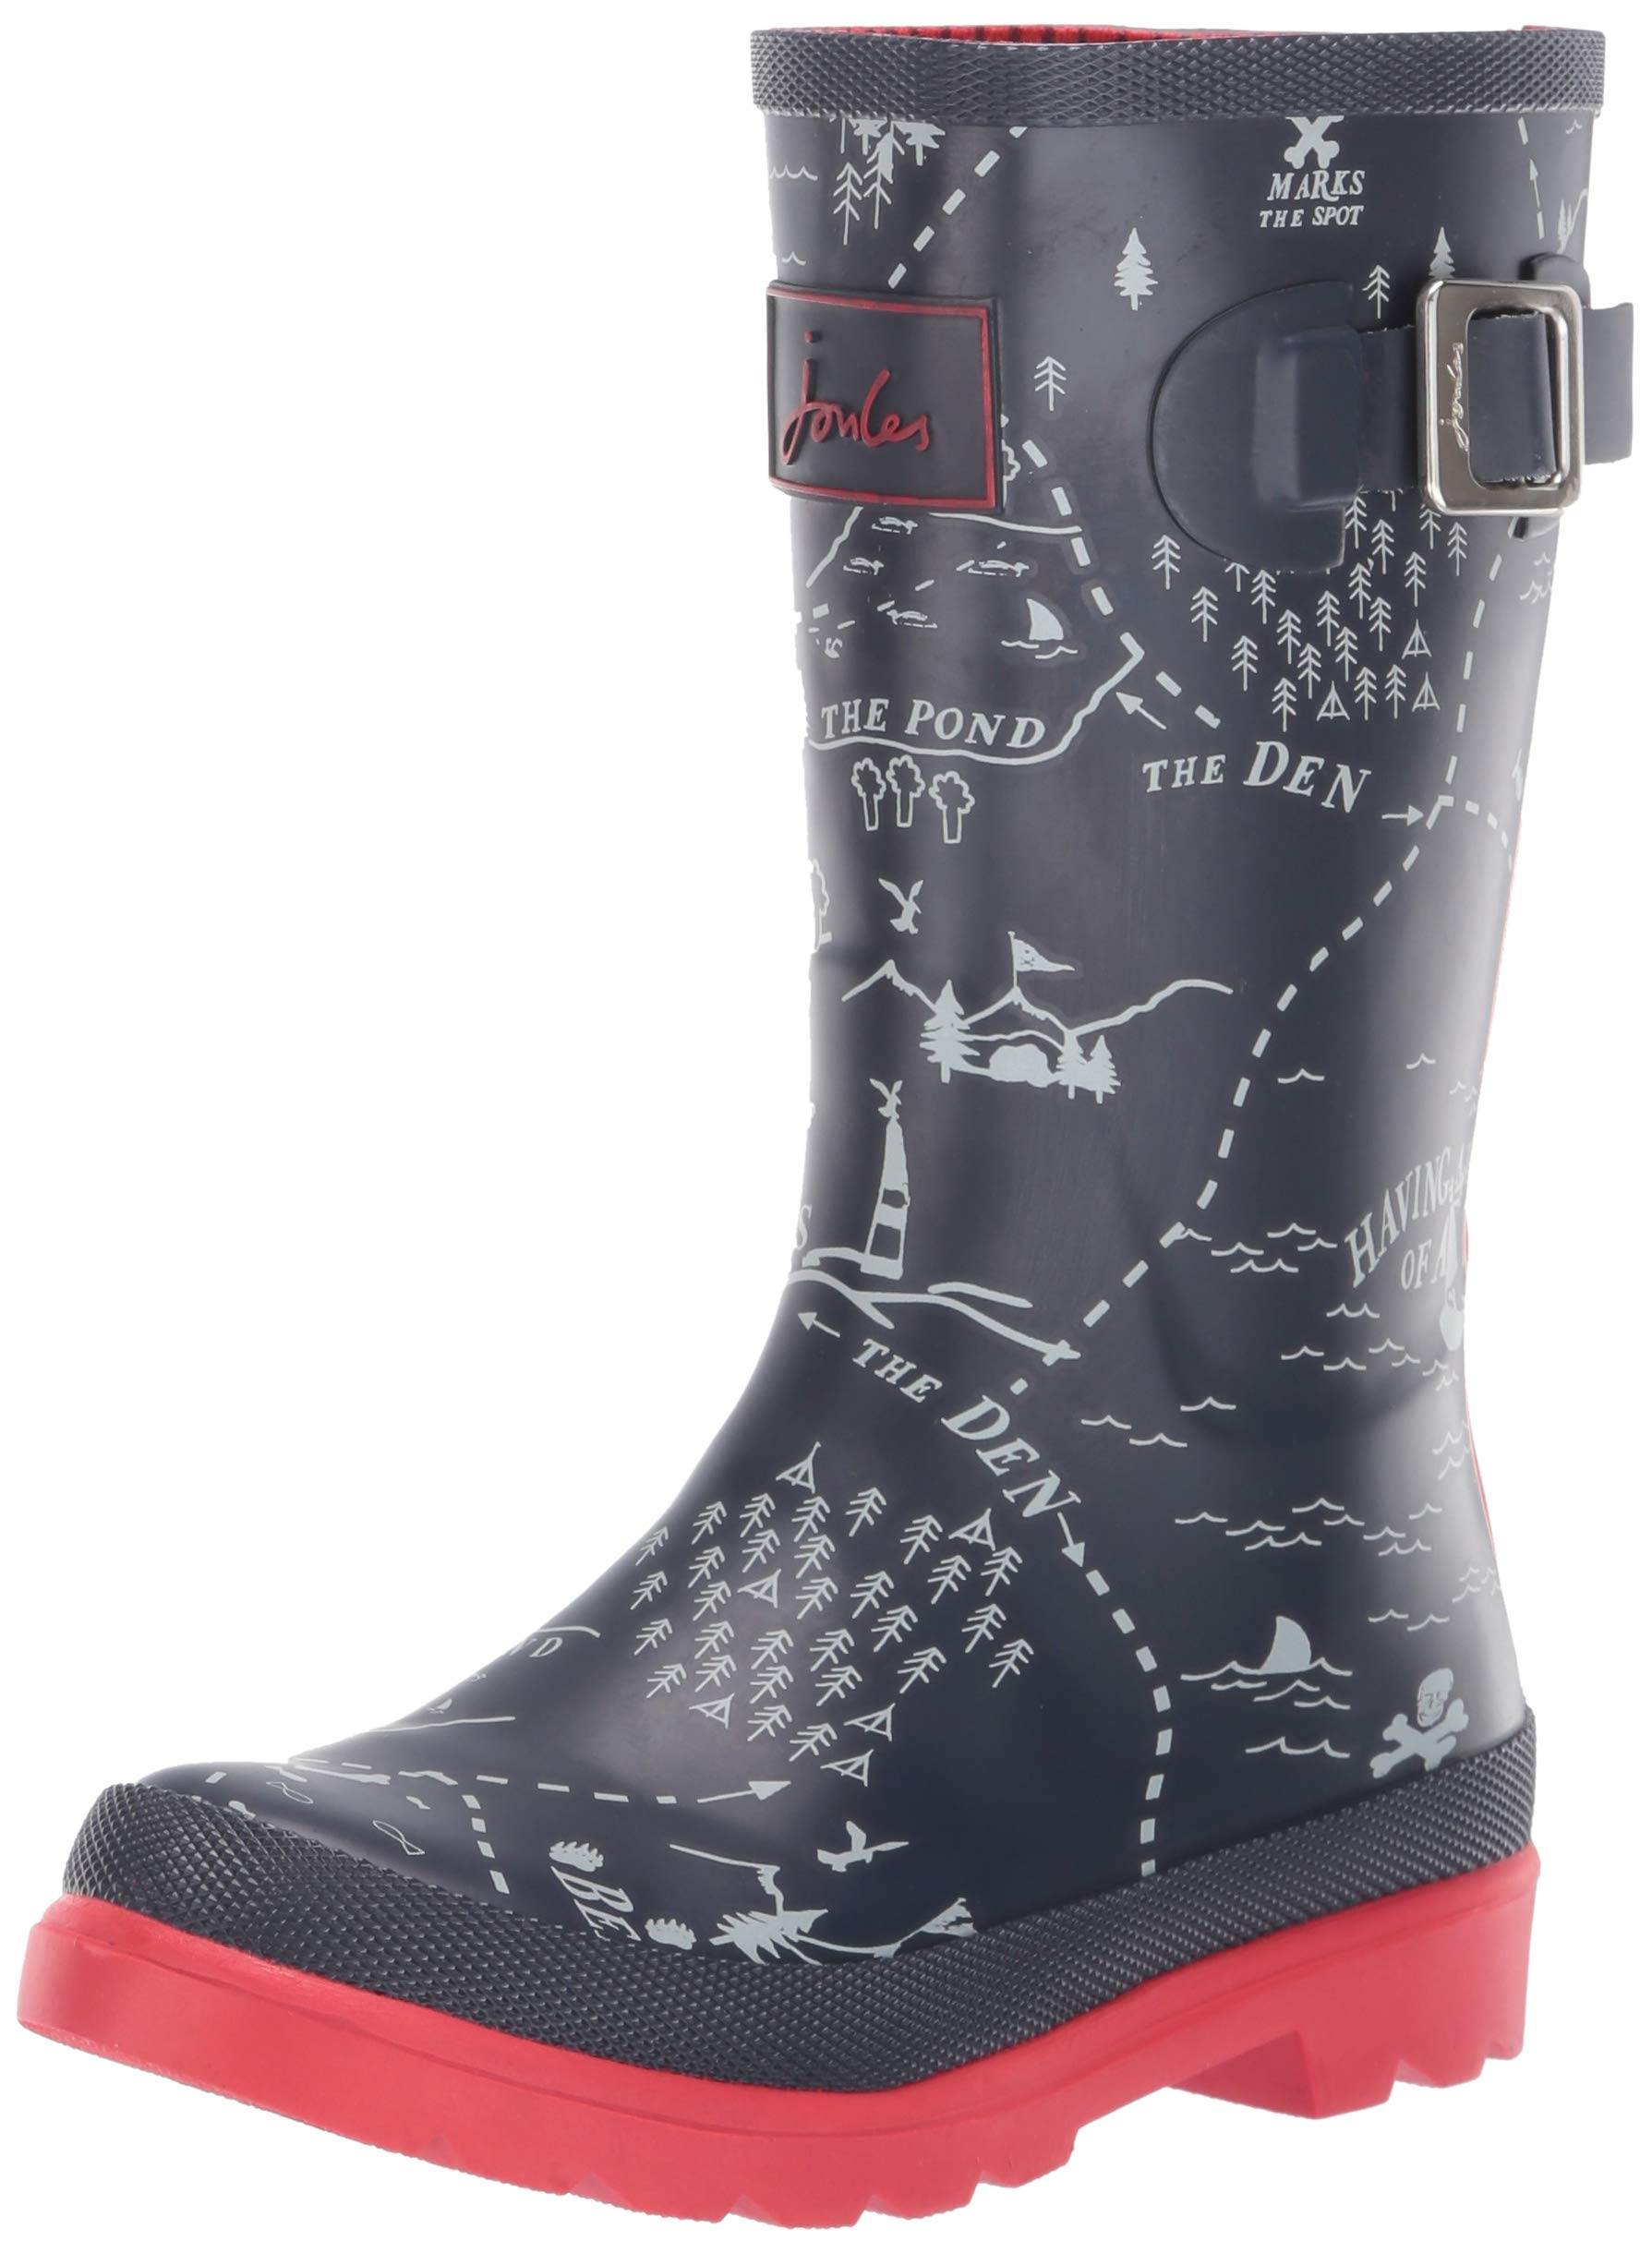 Joules Boys' JNR Welly Print Rain Boot, Navy Map, 2 M US Little Kid